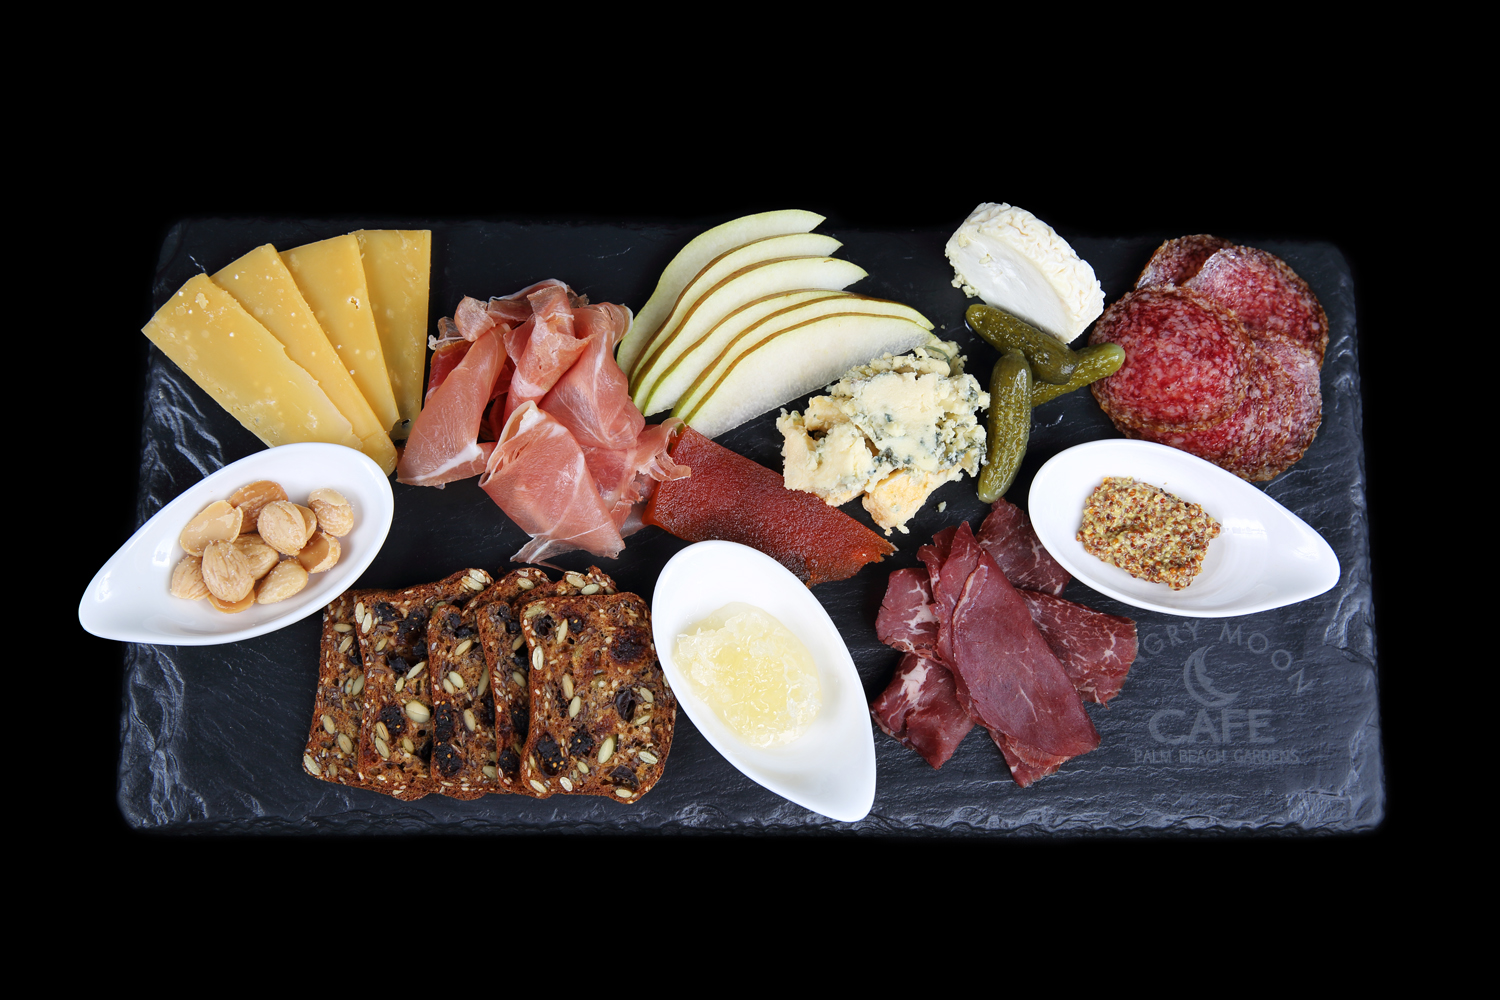 Charcuterie and Cheese Plate - Angry Moon Cafe and Wine Bar, Palm Beach Gardens, FL 33410